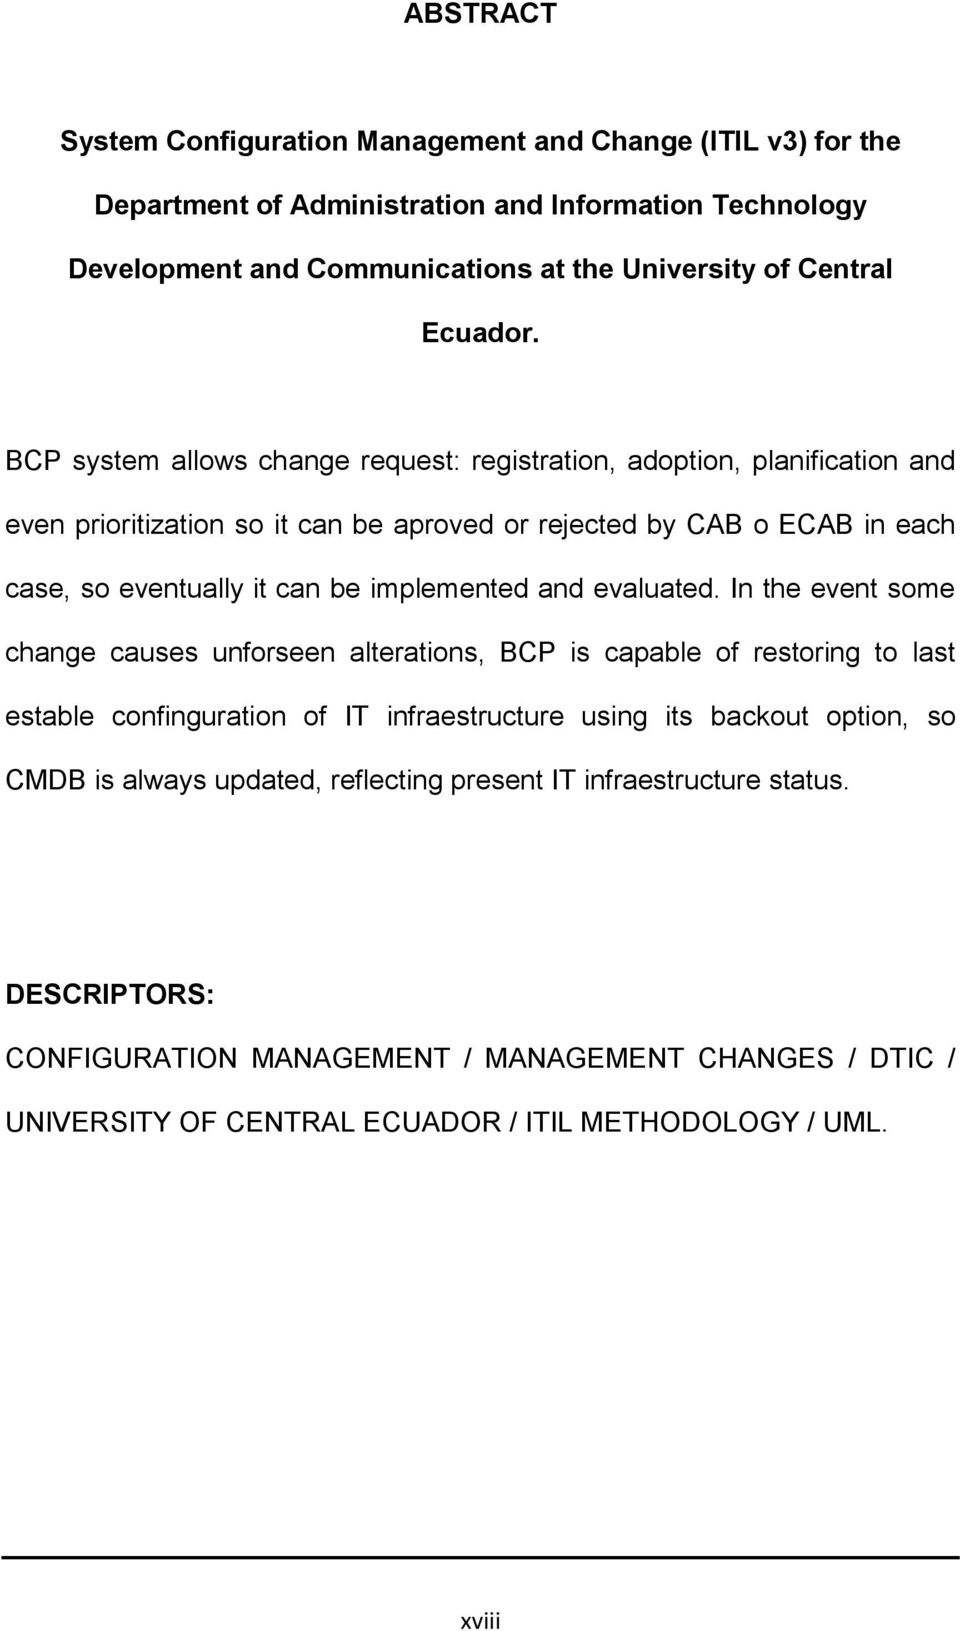 BCP system allows change request: registration, adoption, planification and even prioritization so it can be aproved or rejected by CAB o ECAB in each case, so eventually it can be